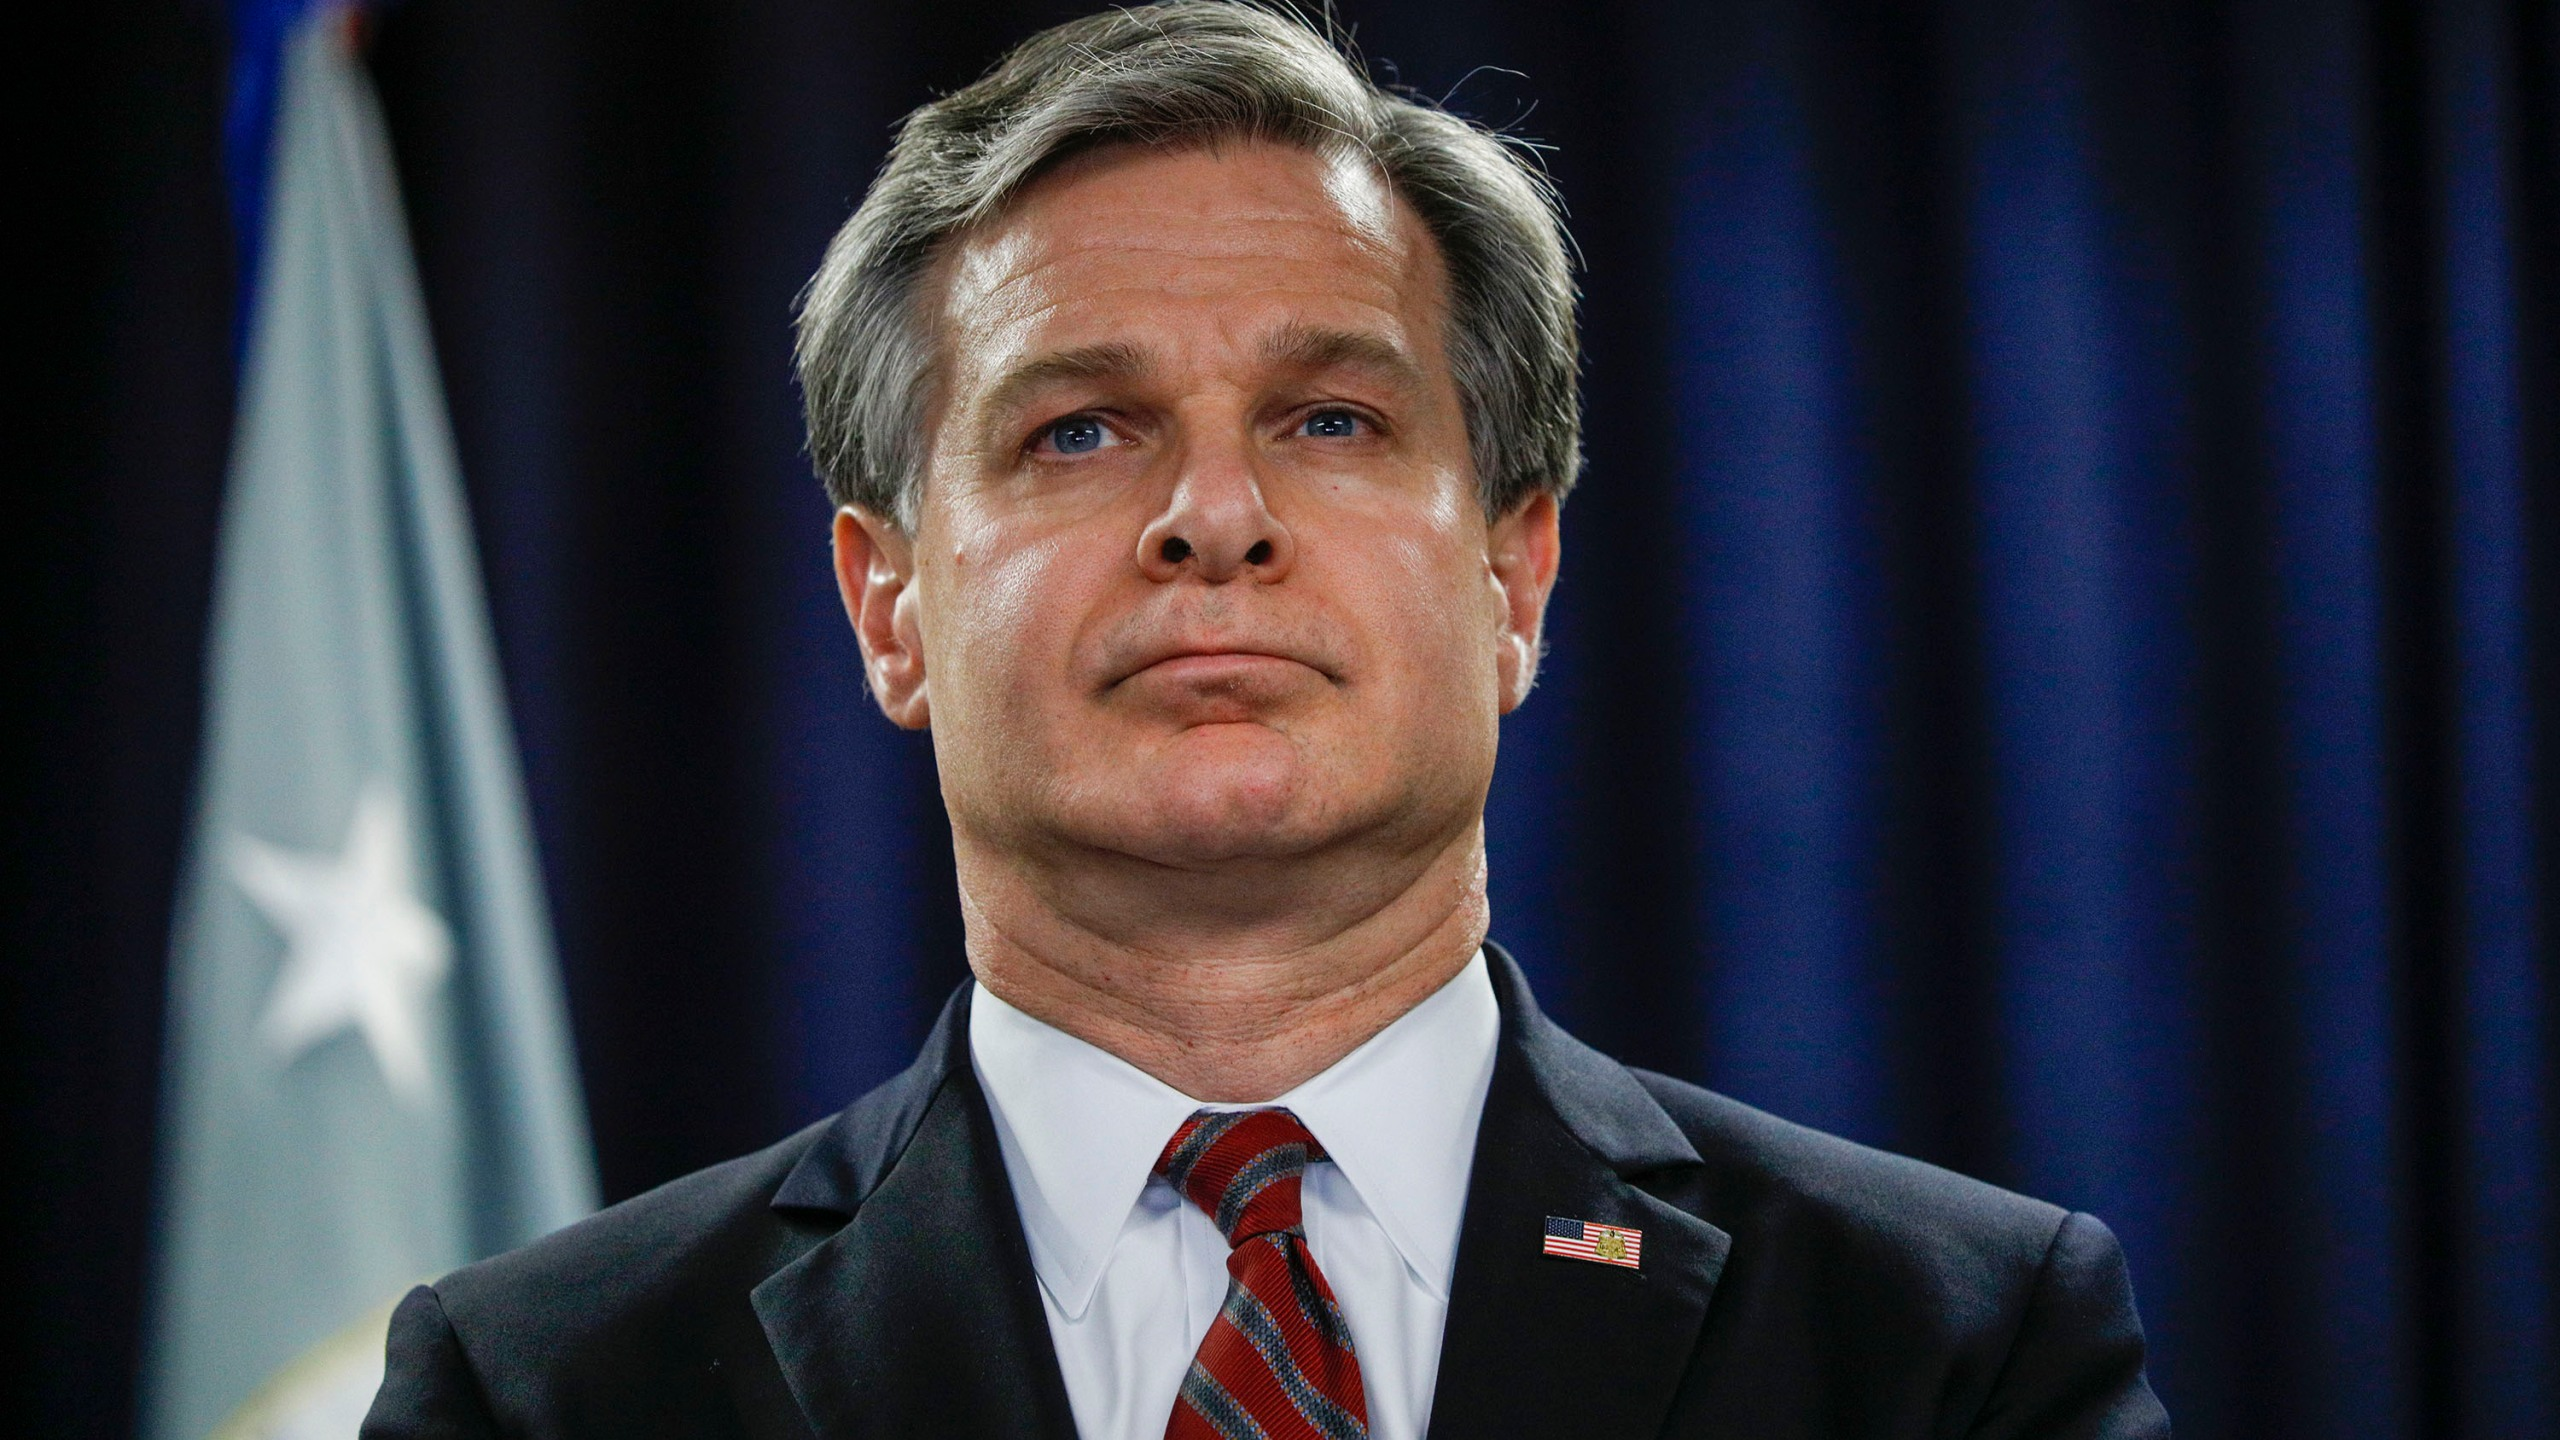 FBI Director Christopher Wray waits to speak at a news conference in Detroit on Dec. 18, 2019. (Bill Pugliano/Getty Images)